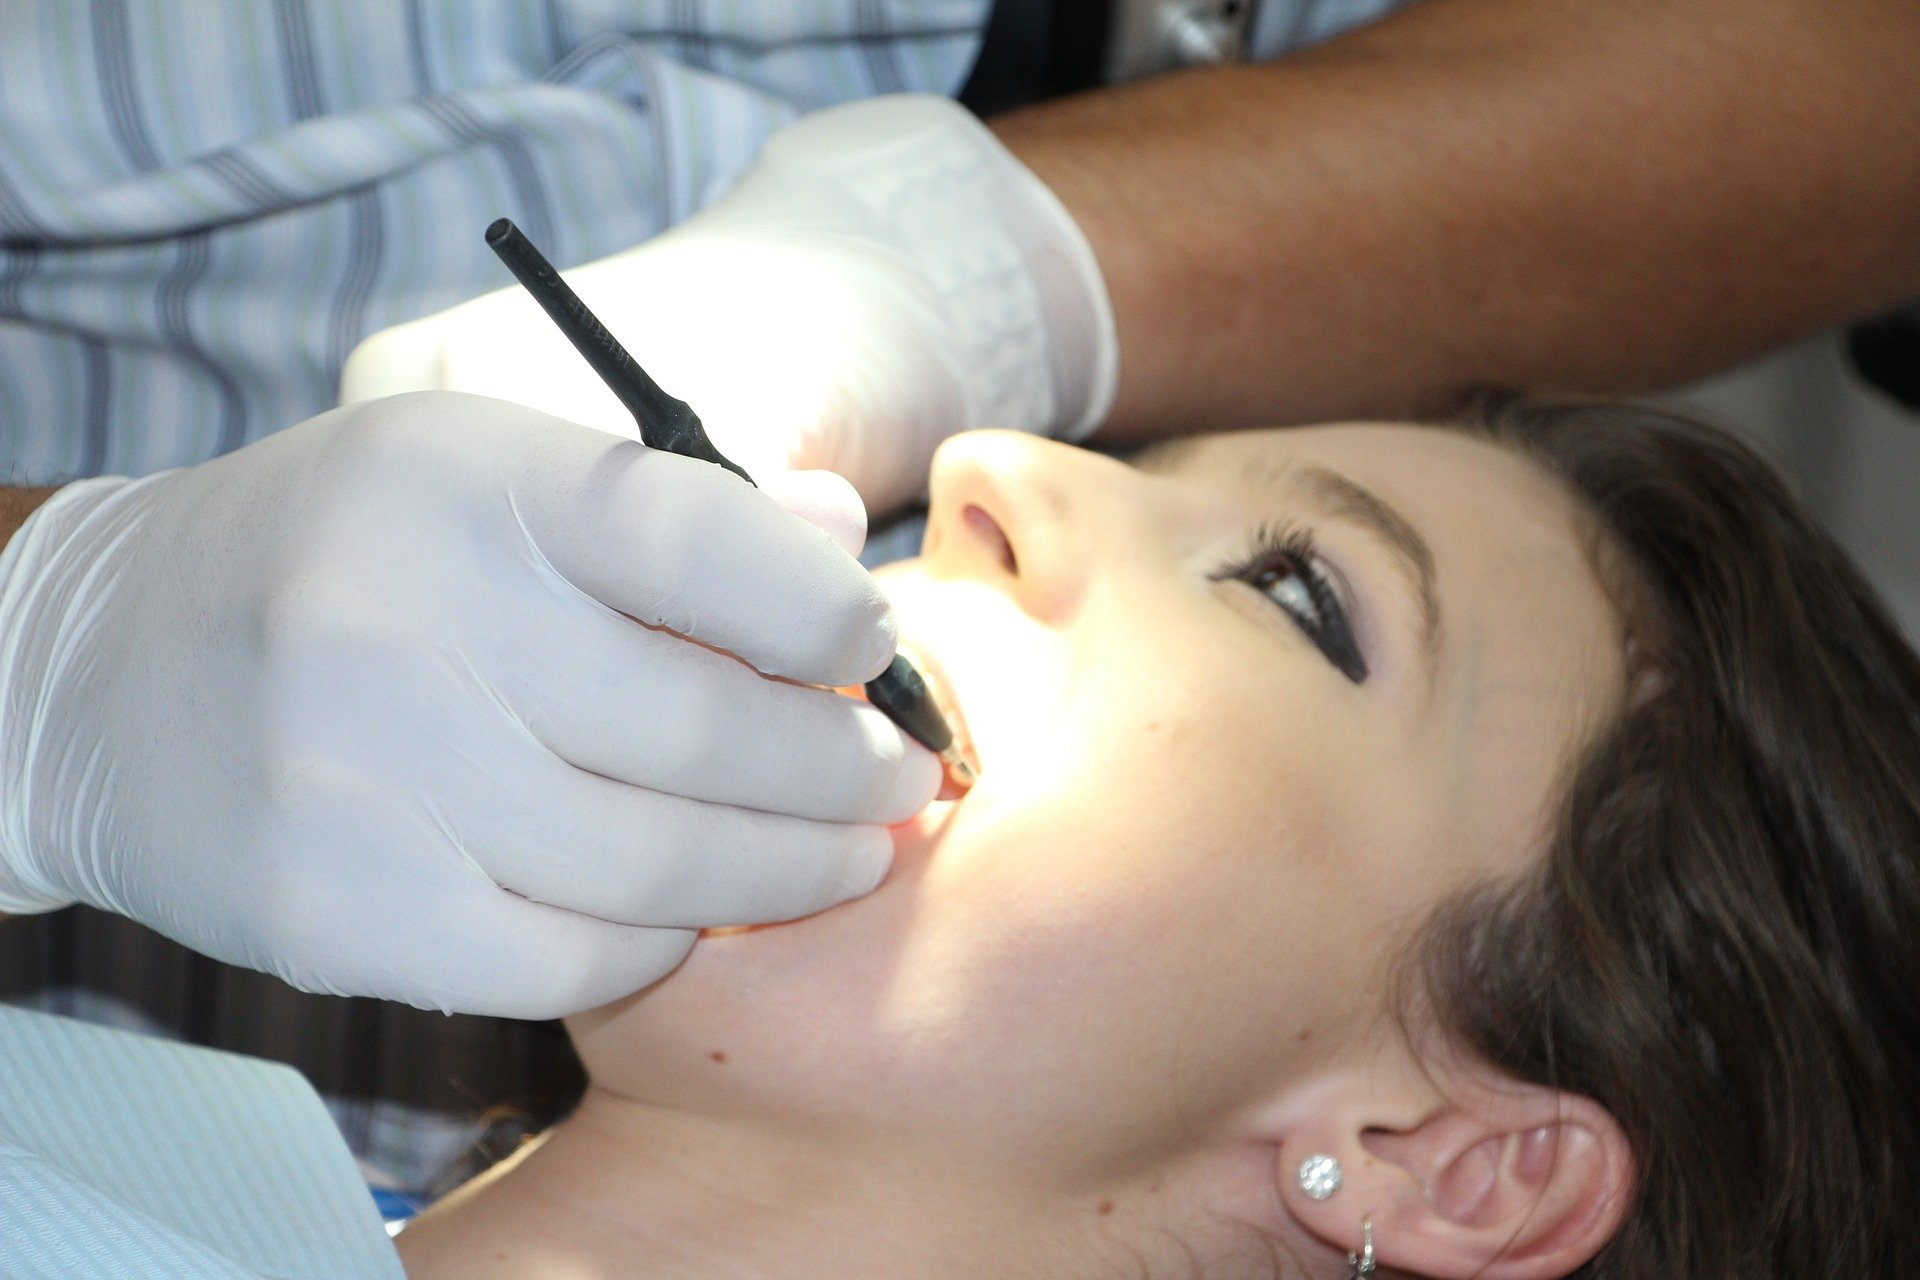 A dentist examining the mouth of the patient